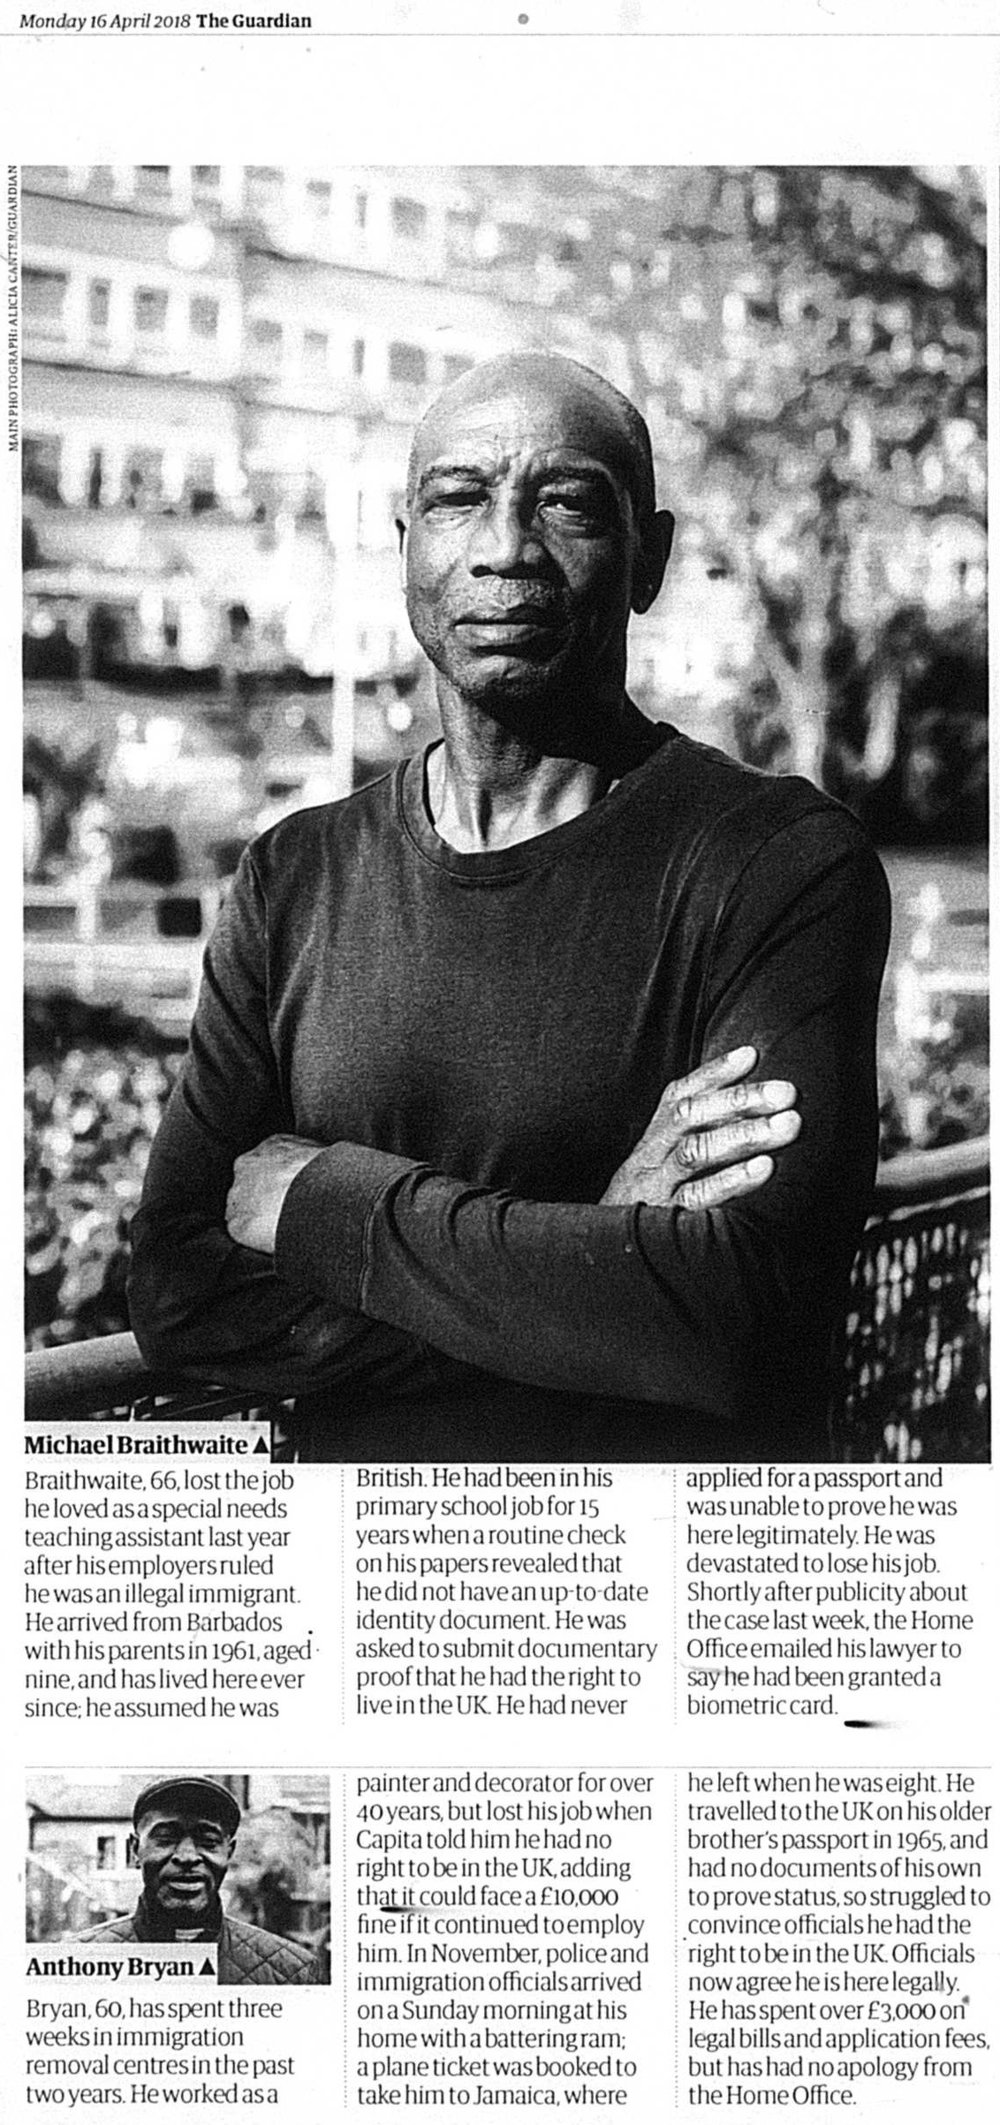 - In 2018 it emerged that, despite the fact that they had come to the UK legally many decades before, many members of the Windrush Generation were being asked to prove their status. If they could not produce the right records, these people were being wrongly detailed, denied their rights and sometimes deported.This article, 'Talks rejected on 'shameful' treatment of Windrush generation' depicts some of these people's stories.Author: Amelia GentlemanThe Guardian; London (UK), 16 April 2018: 1, 12-13© Guardian Newspapers Limited Apr 16, 2018